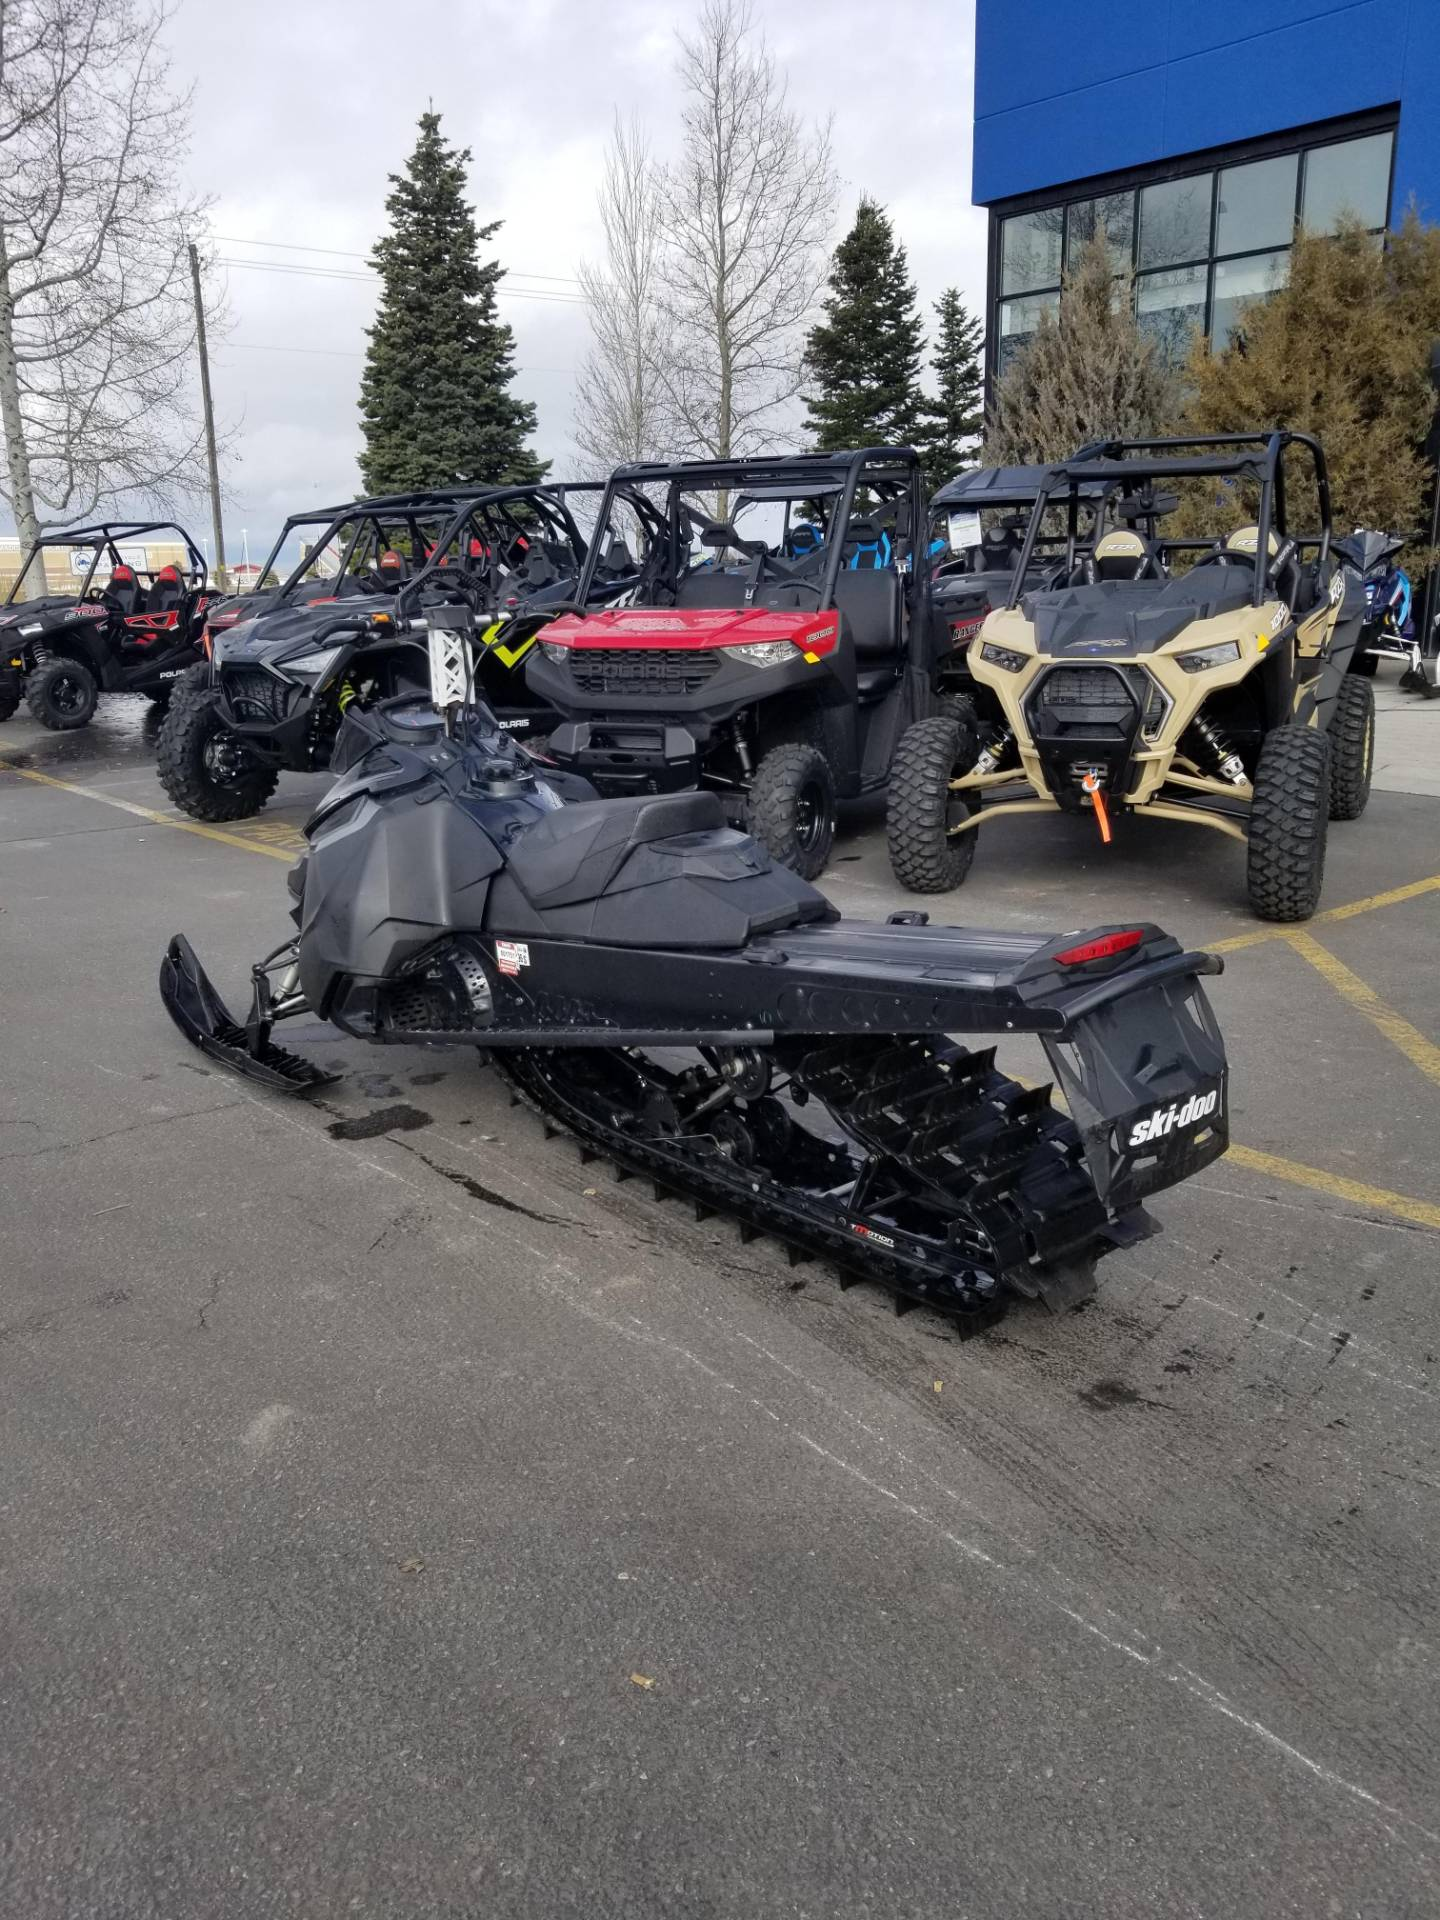 2013 Ski-Doo Summit® X® E-TEC 800R 154 in Rexburg, Idaho - Photo 10